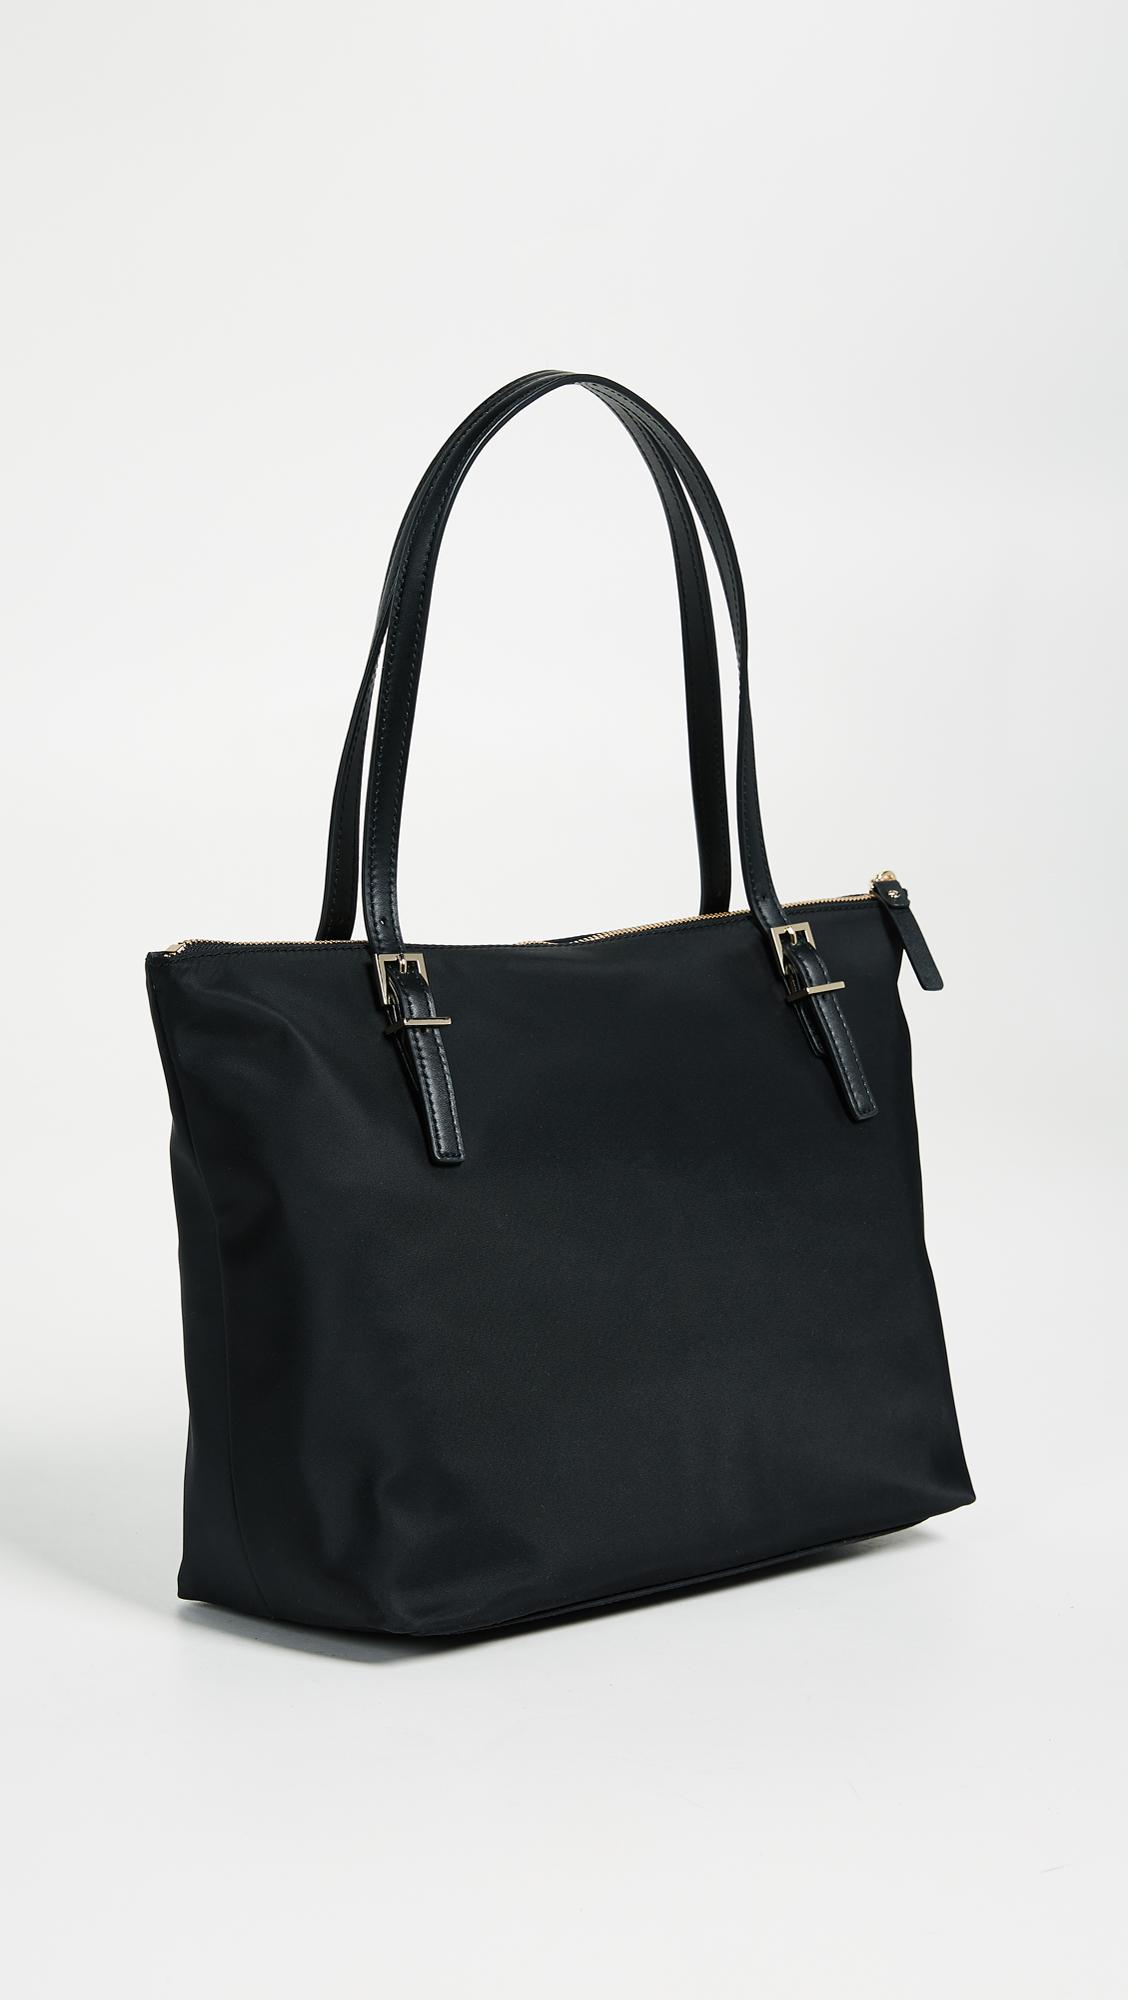 Kate Spade Synthetic Small Maya Tote in Black